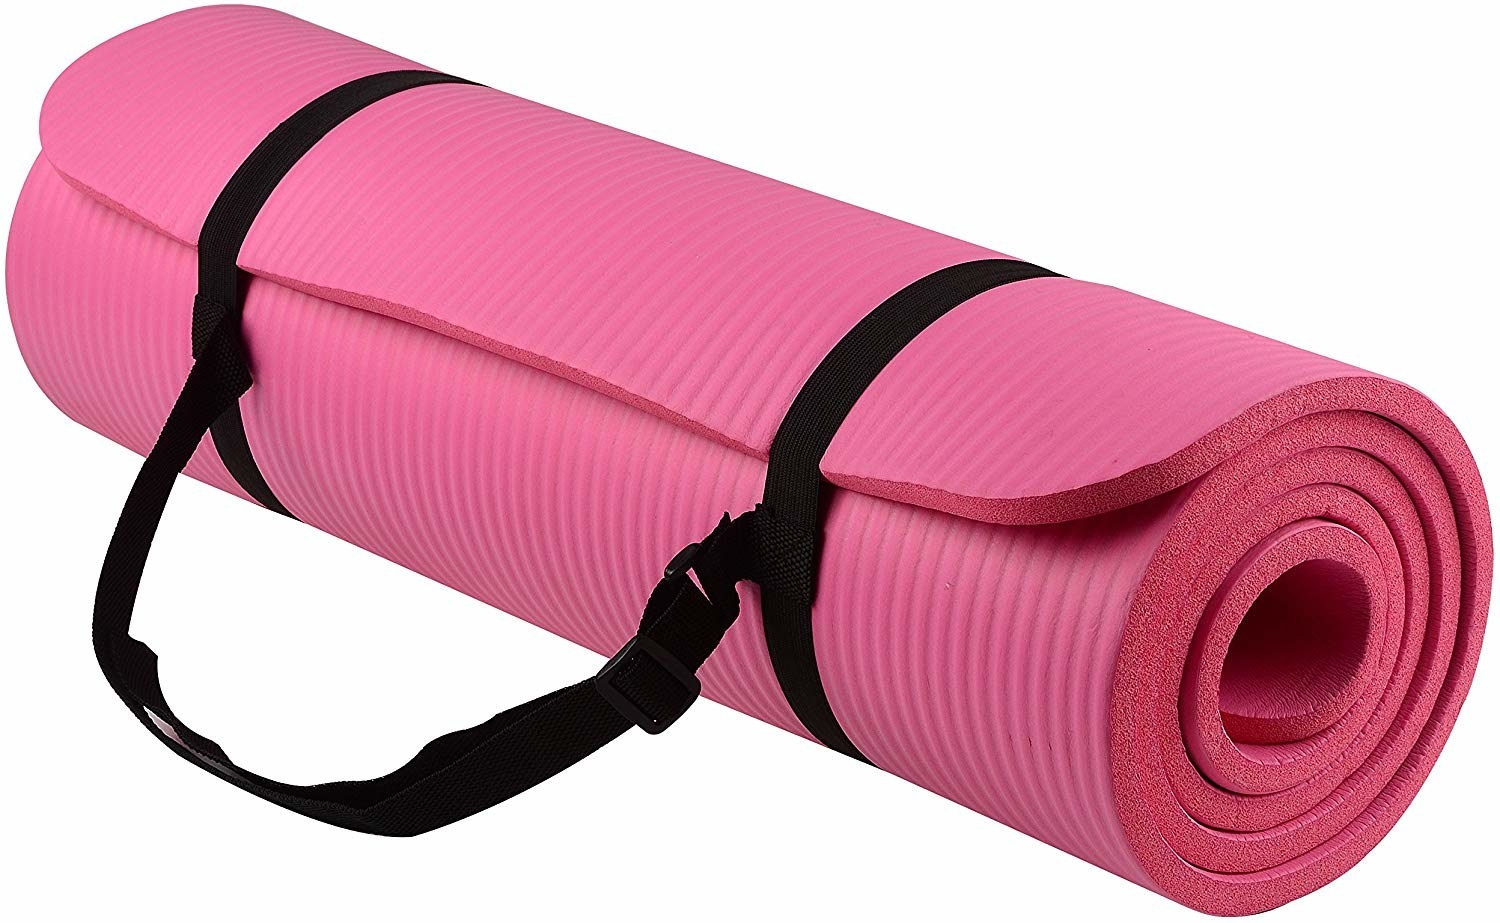 The yoga mat rolled up and held in place by a strap